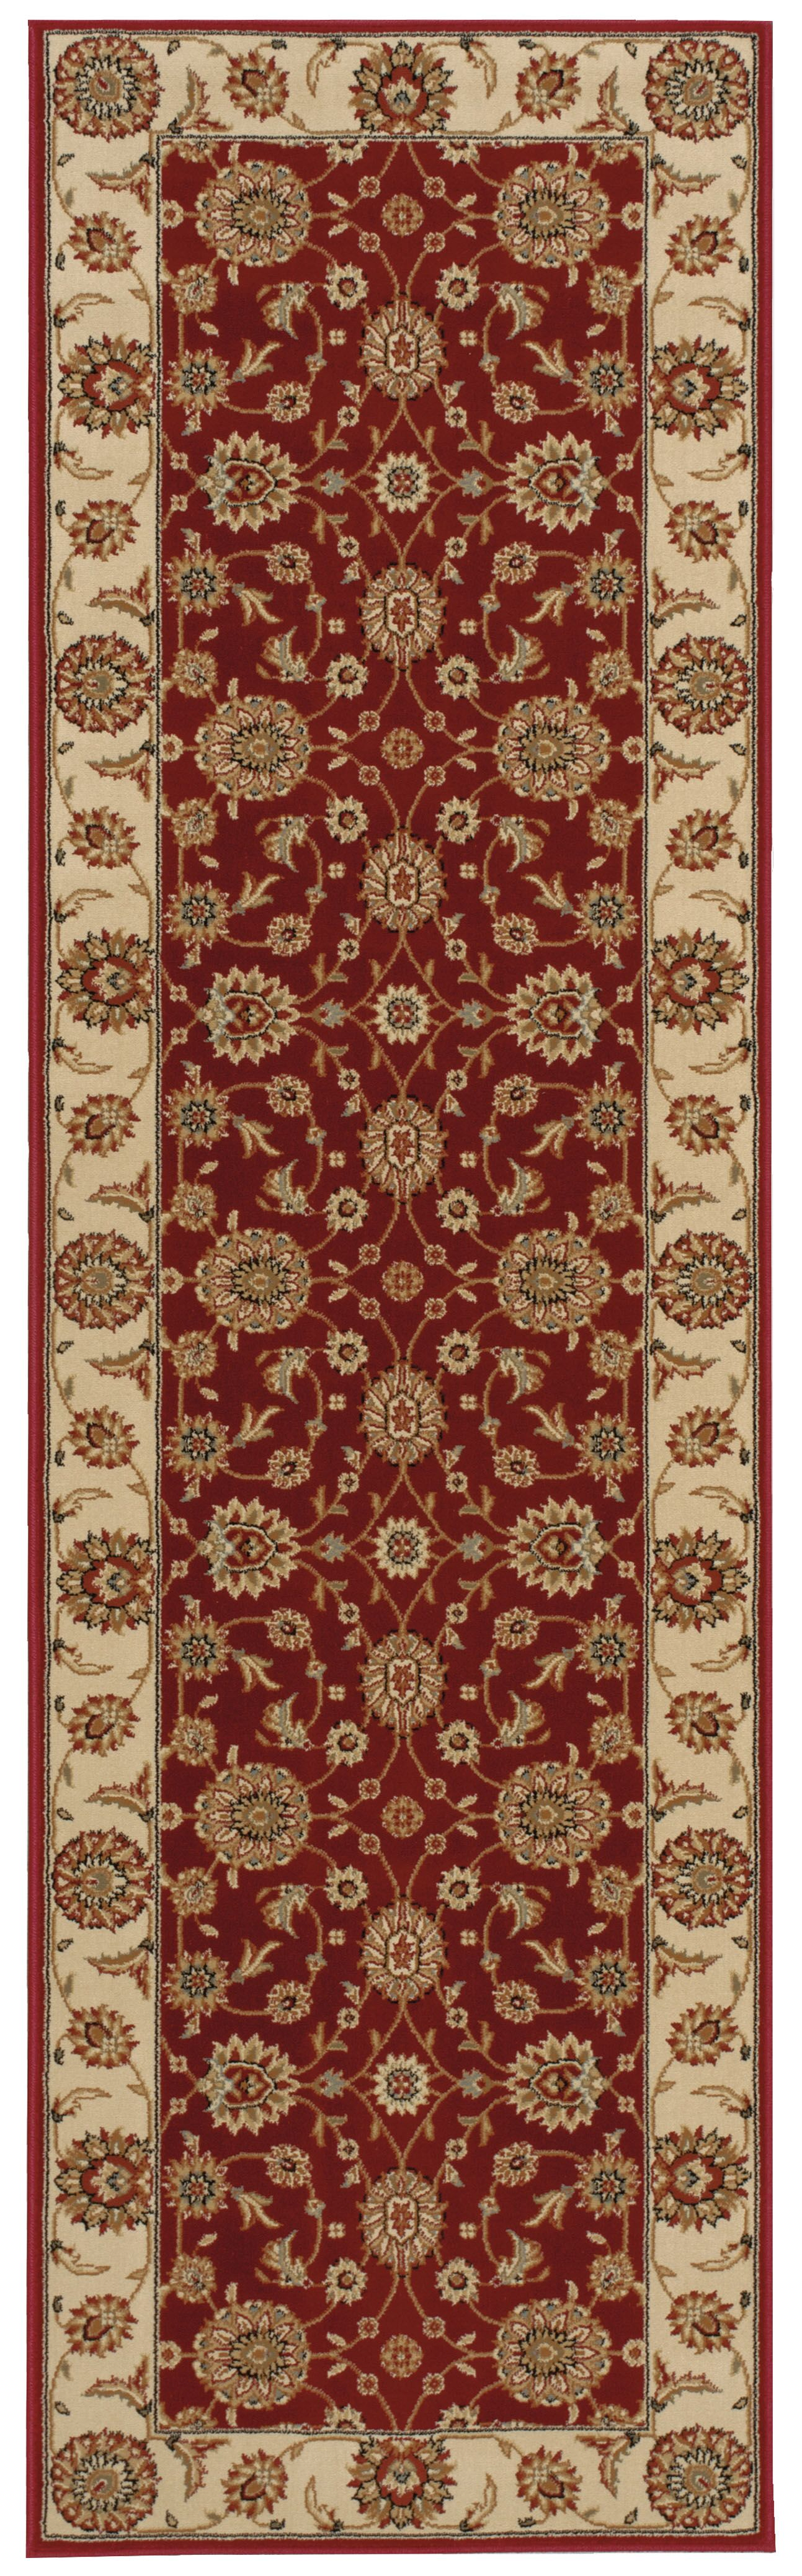 Baye Red/Ivory Area Rug Rug Size: Rectangle 7'10